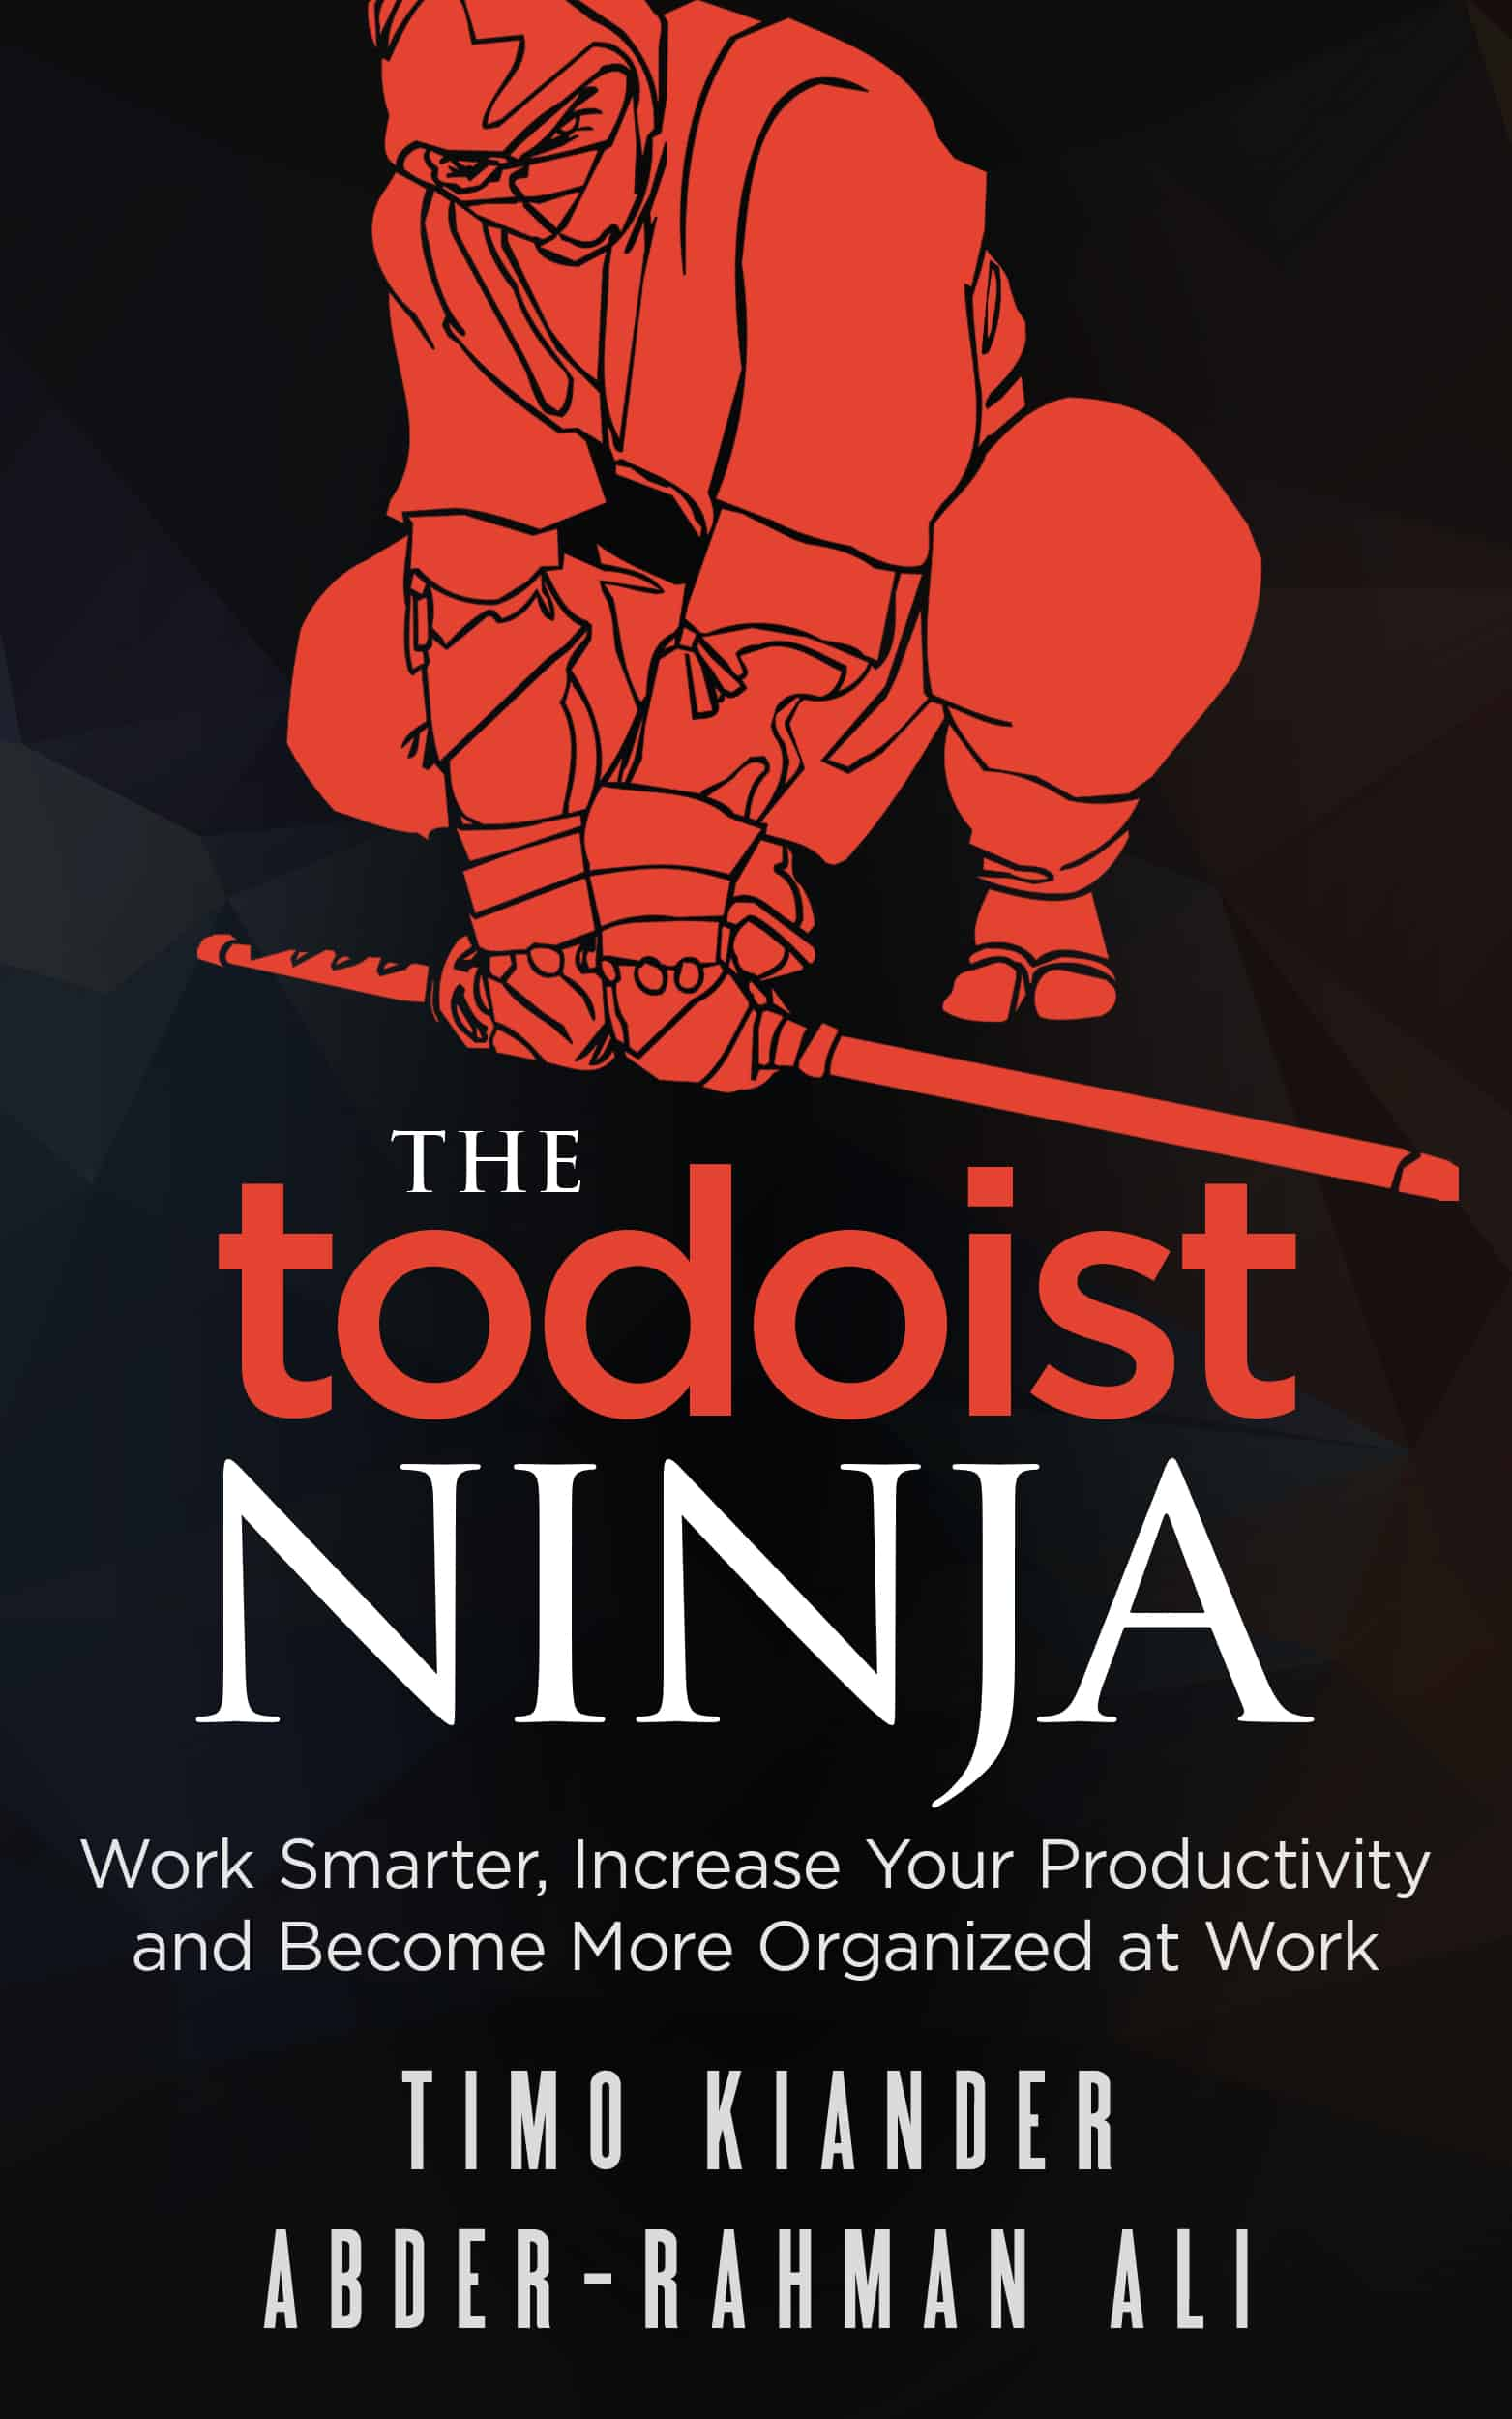 The Todoist Ninja: Work Smarter, Increase Your Productivity, and Become More Organized at Work